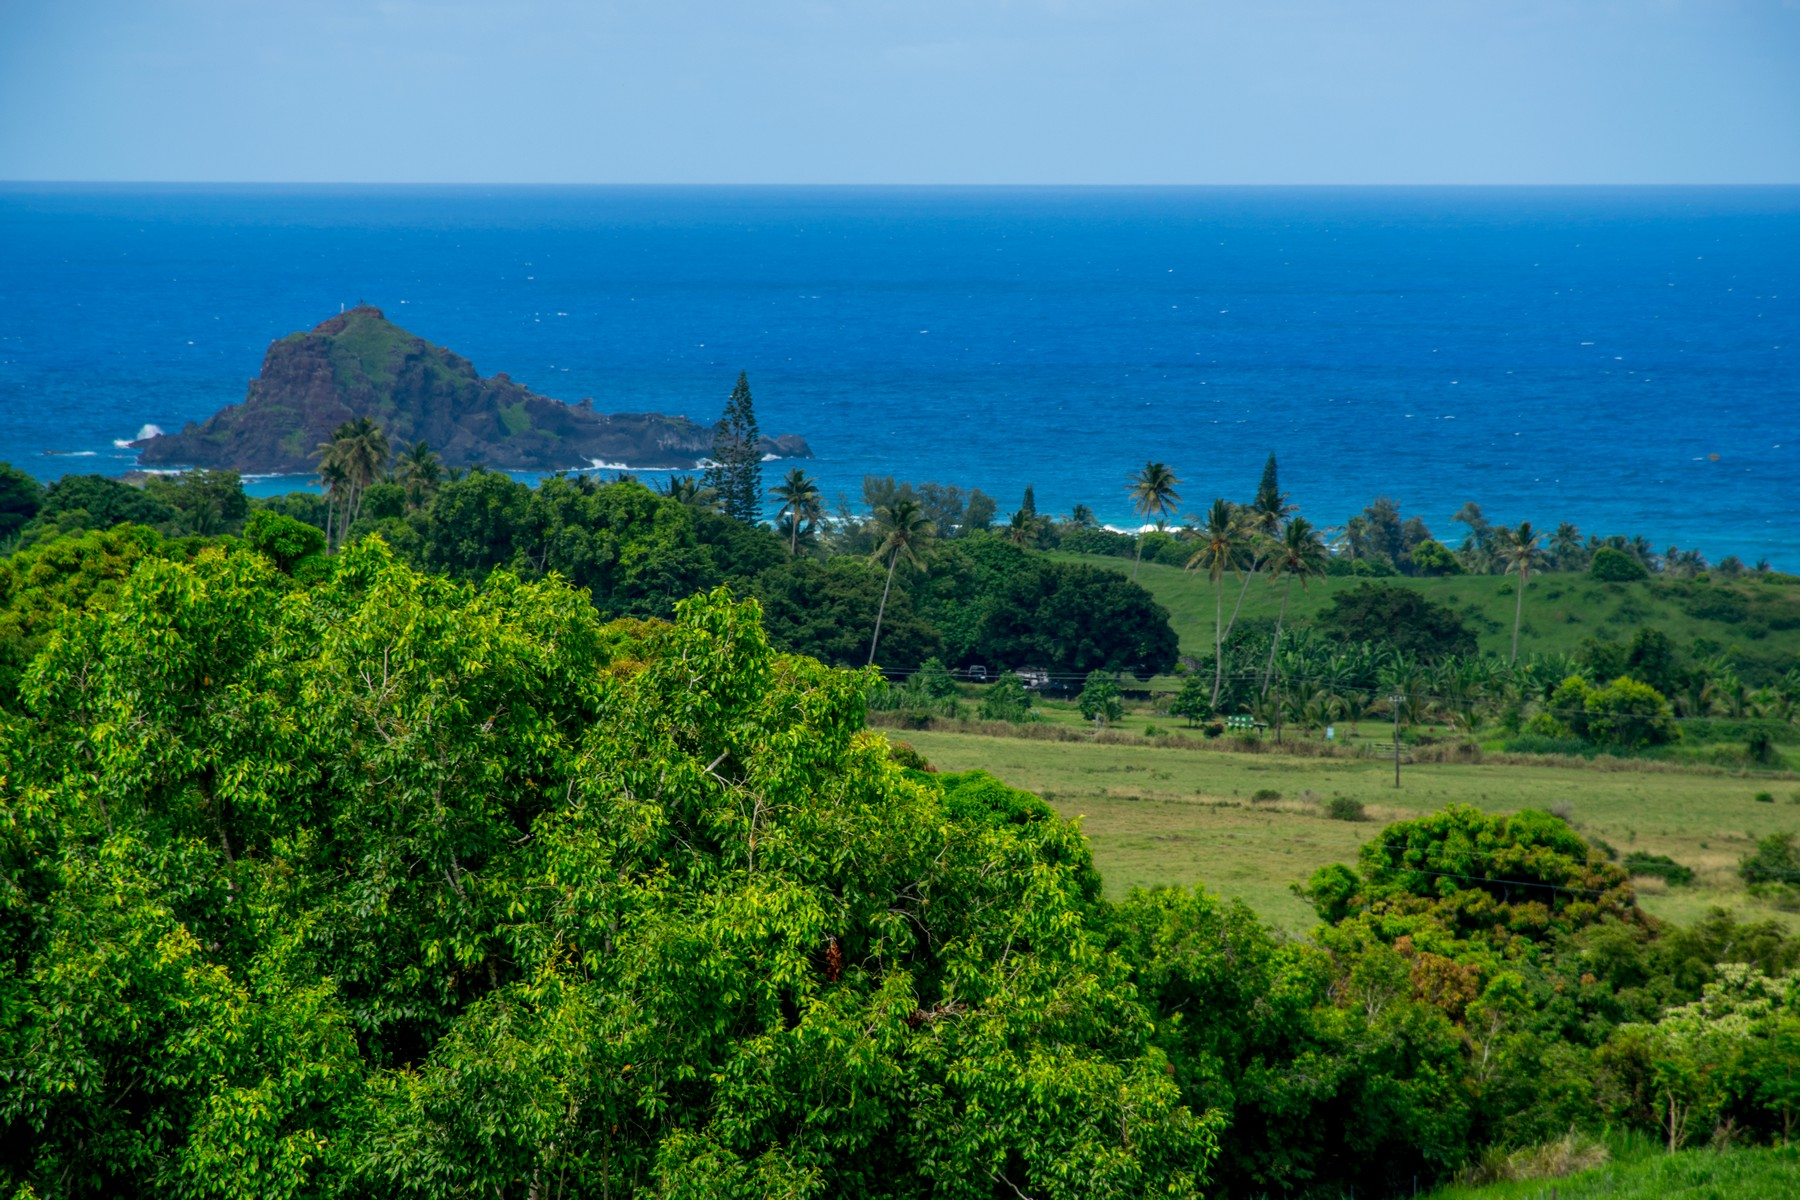 Земля для того Продажа на Over 15 Acres in Beauful Maka'alae-Hana, Maui 153 Kapia Road, Lot#4-Parcel #69 Hana, Гавайи, 96713 Соединенные Штаты